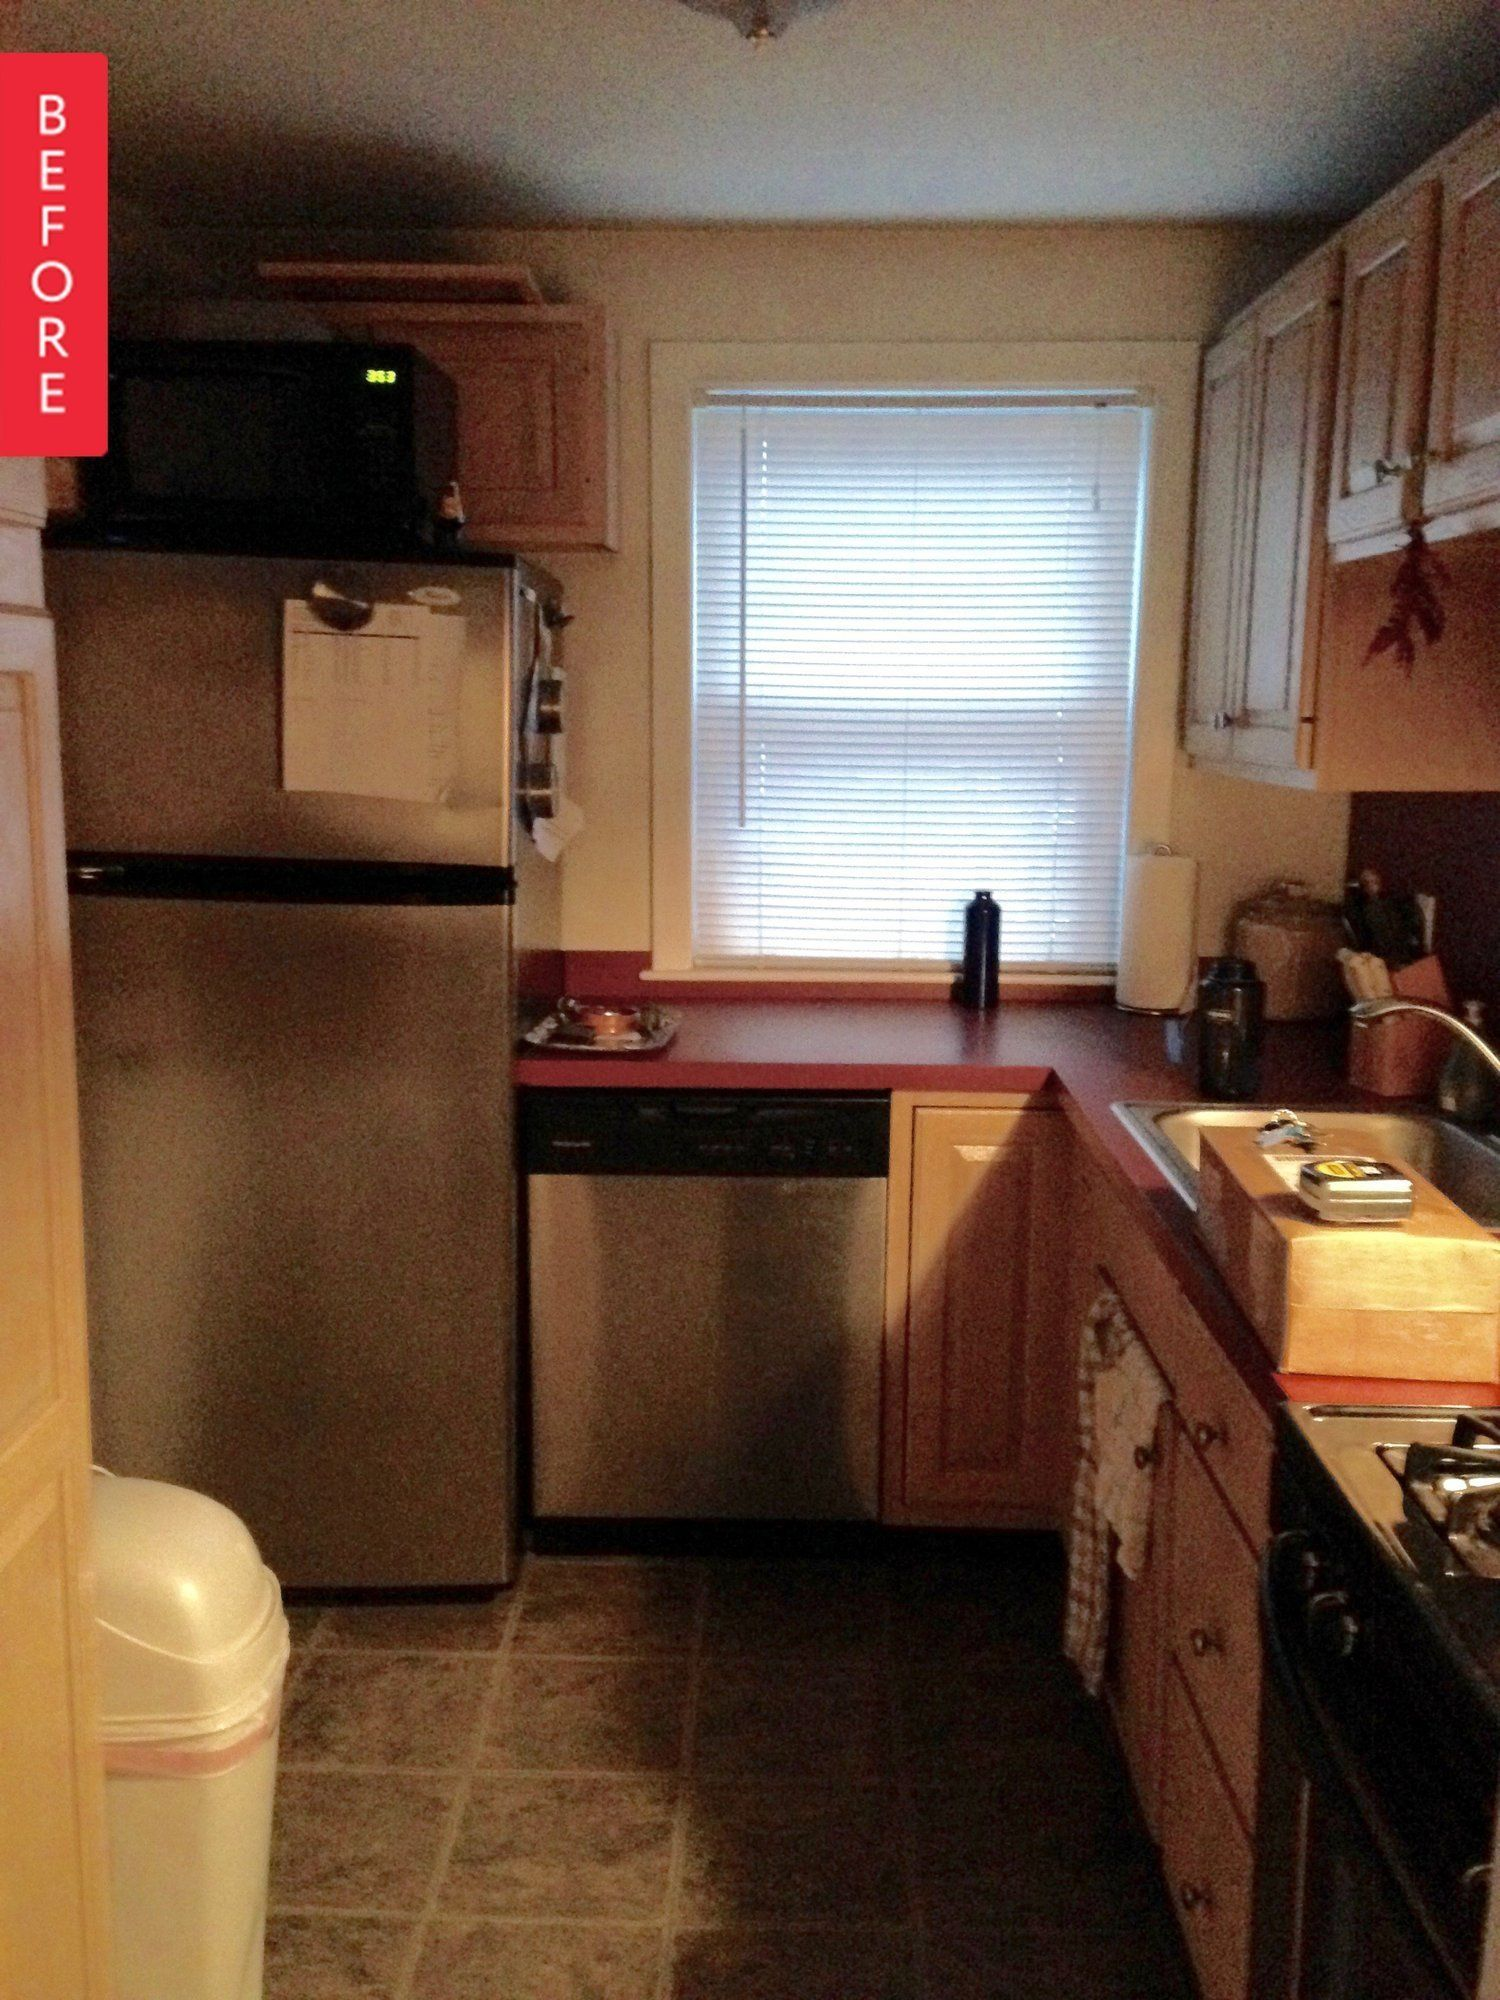 Before & After: A (Mostly) DIY Compact Kitchen Remodel | Pinterest ...